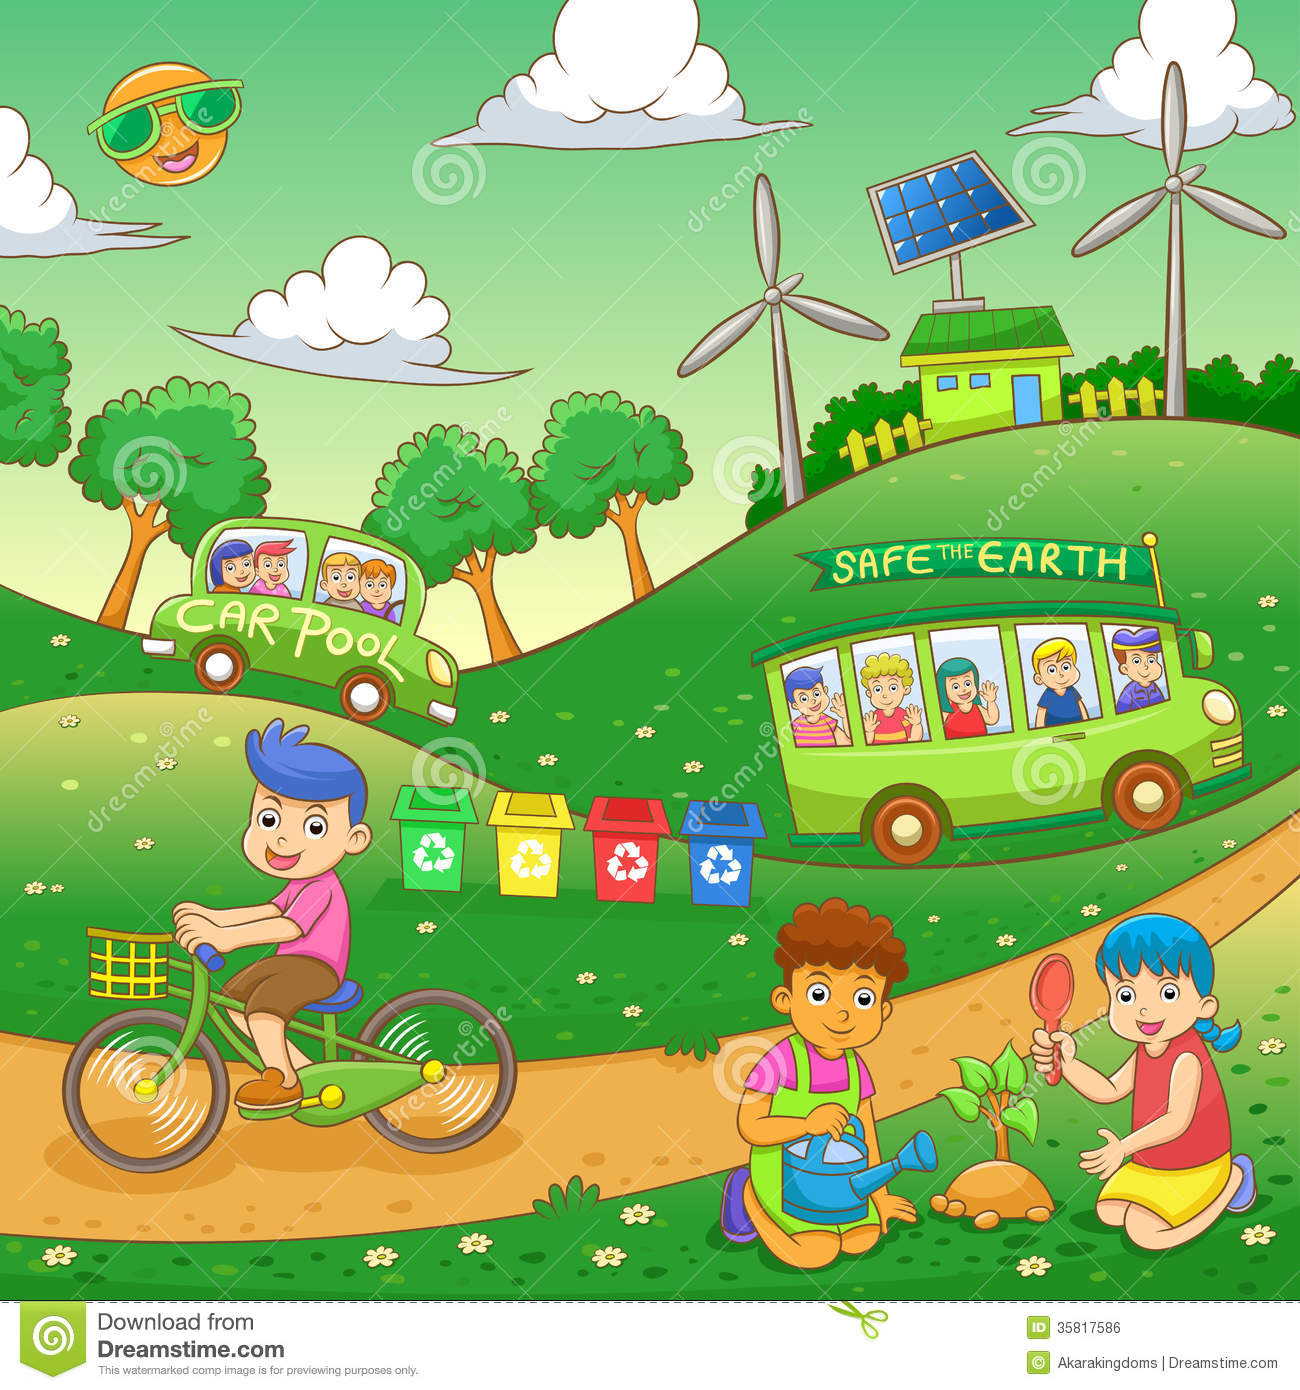 Children Save Our Green World Royalty Free Stock Image ...